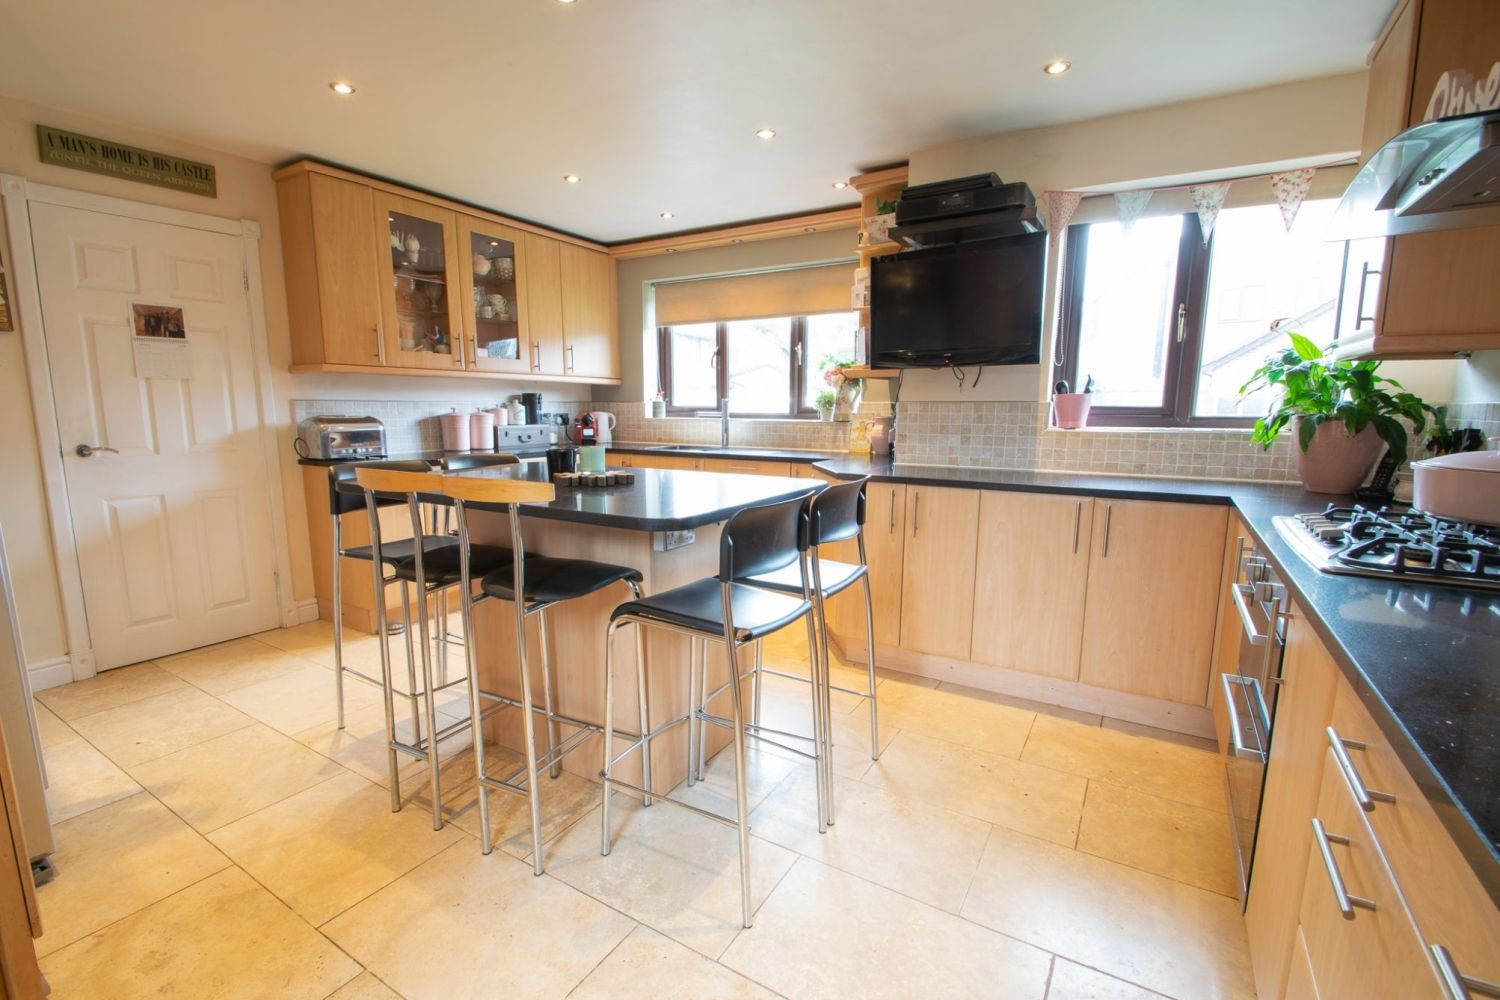 5 bed detached for sale in Melrose Avenue, Oldswinford, Stourbridge  - Property Image 3